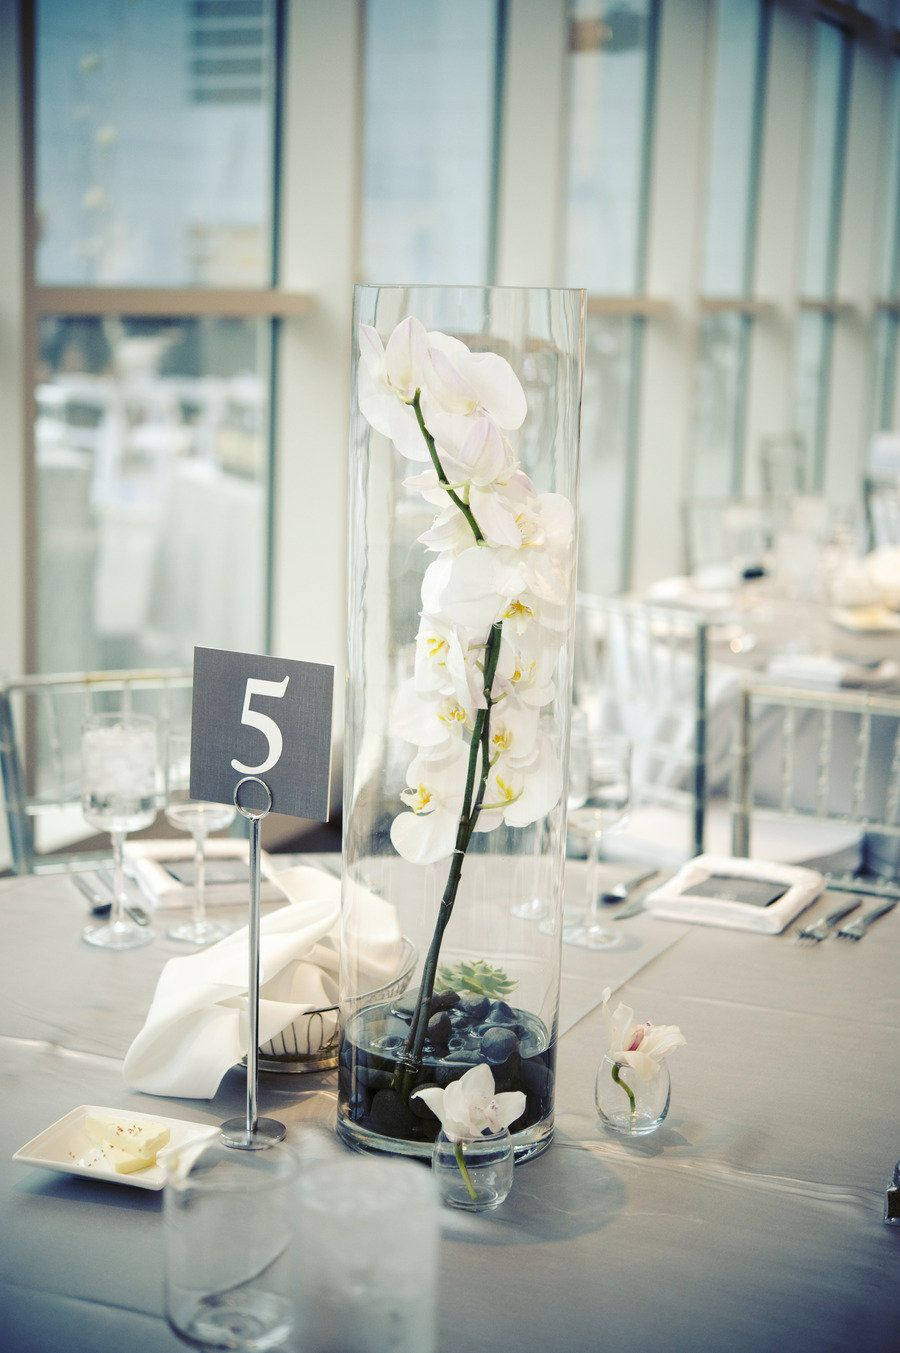 Wedding decorations yellow and gray  Orchids are always a perfect neutral and great for modern wedding